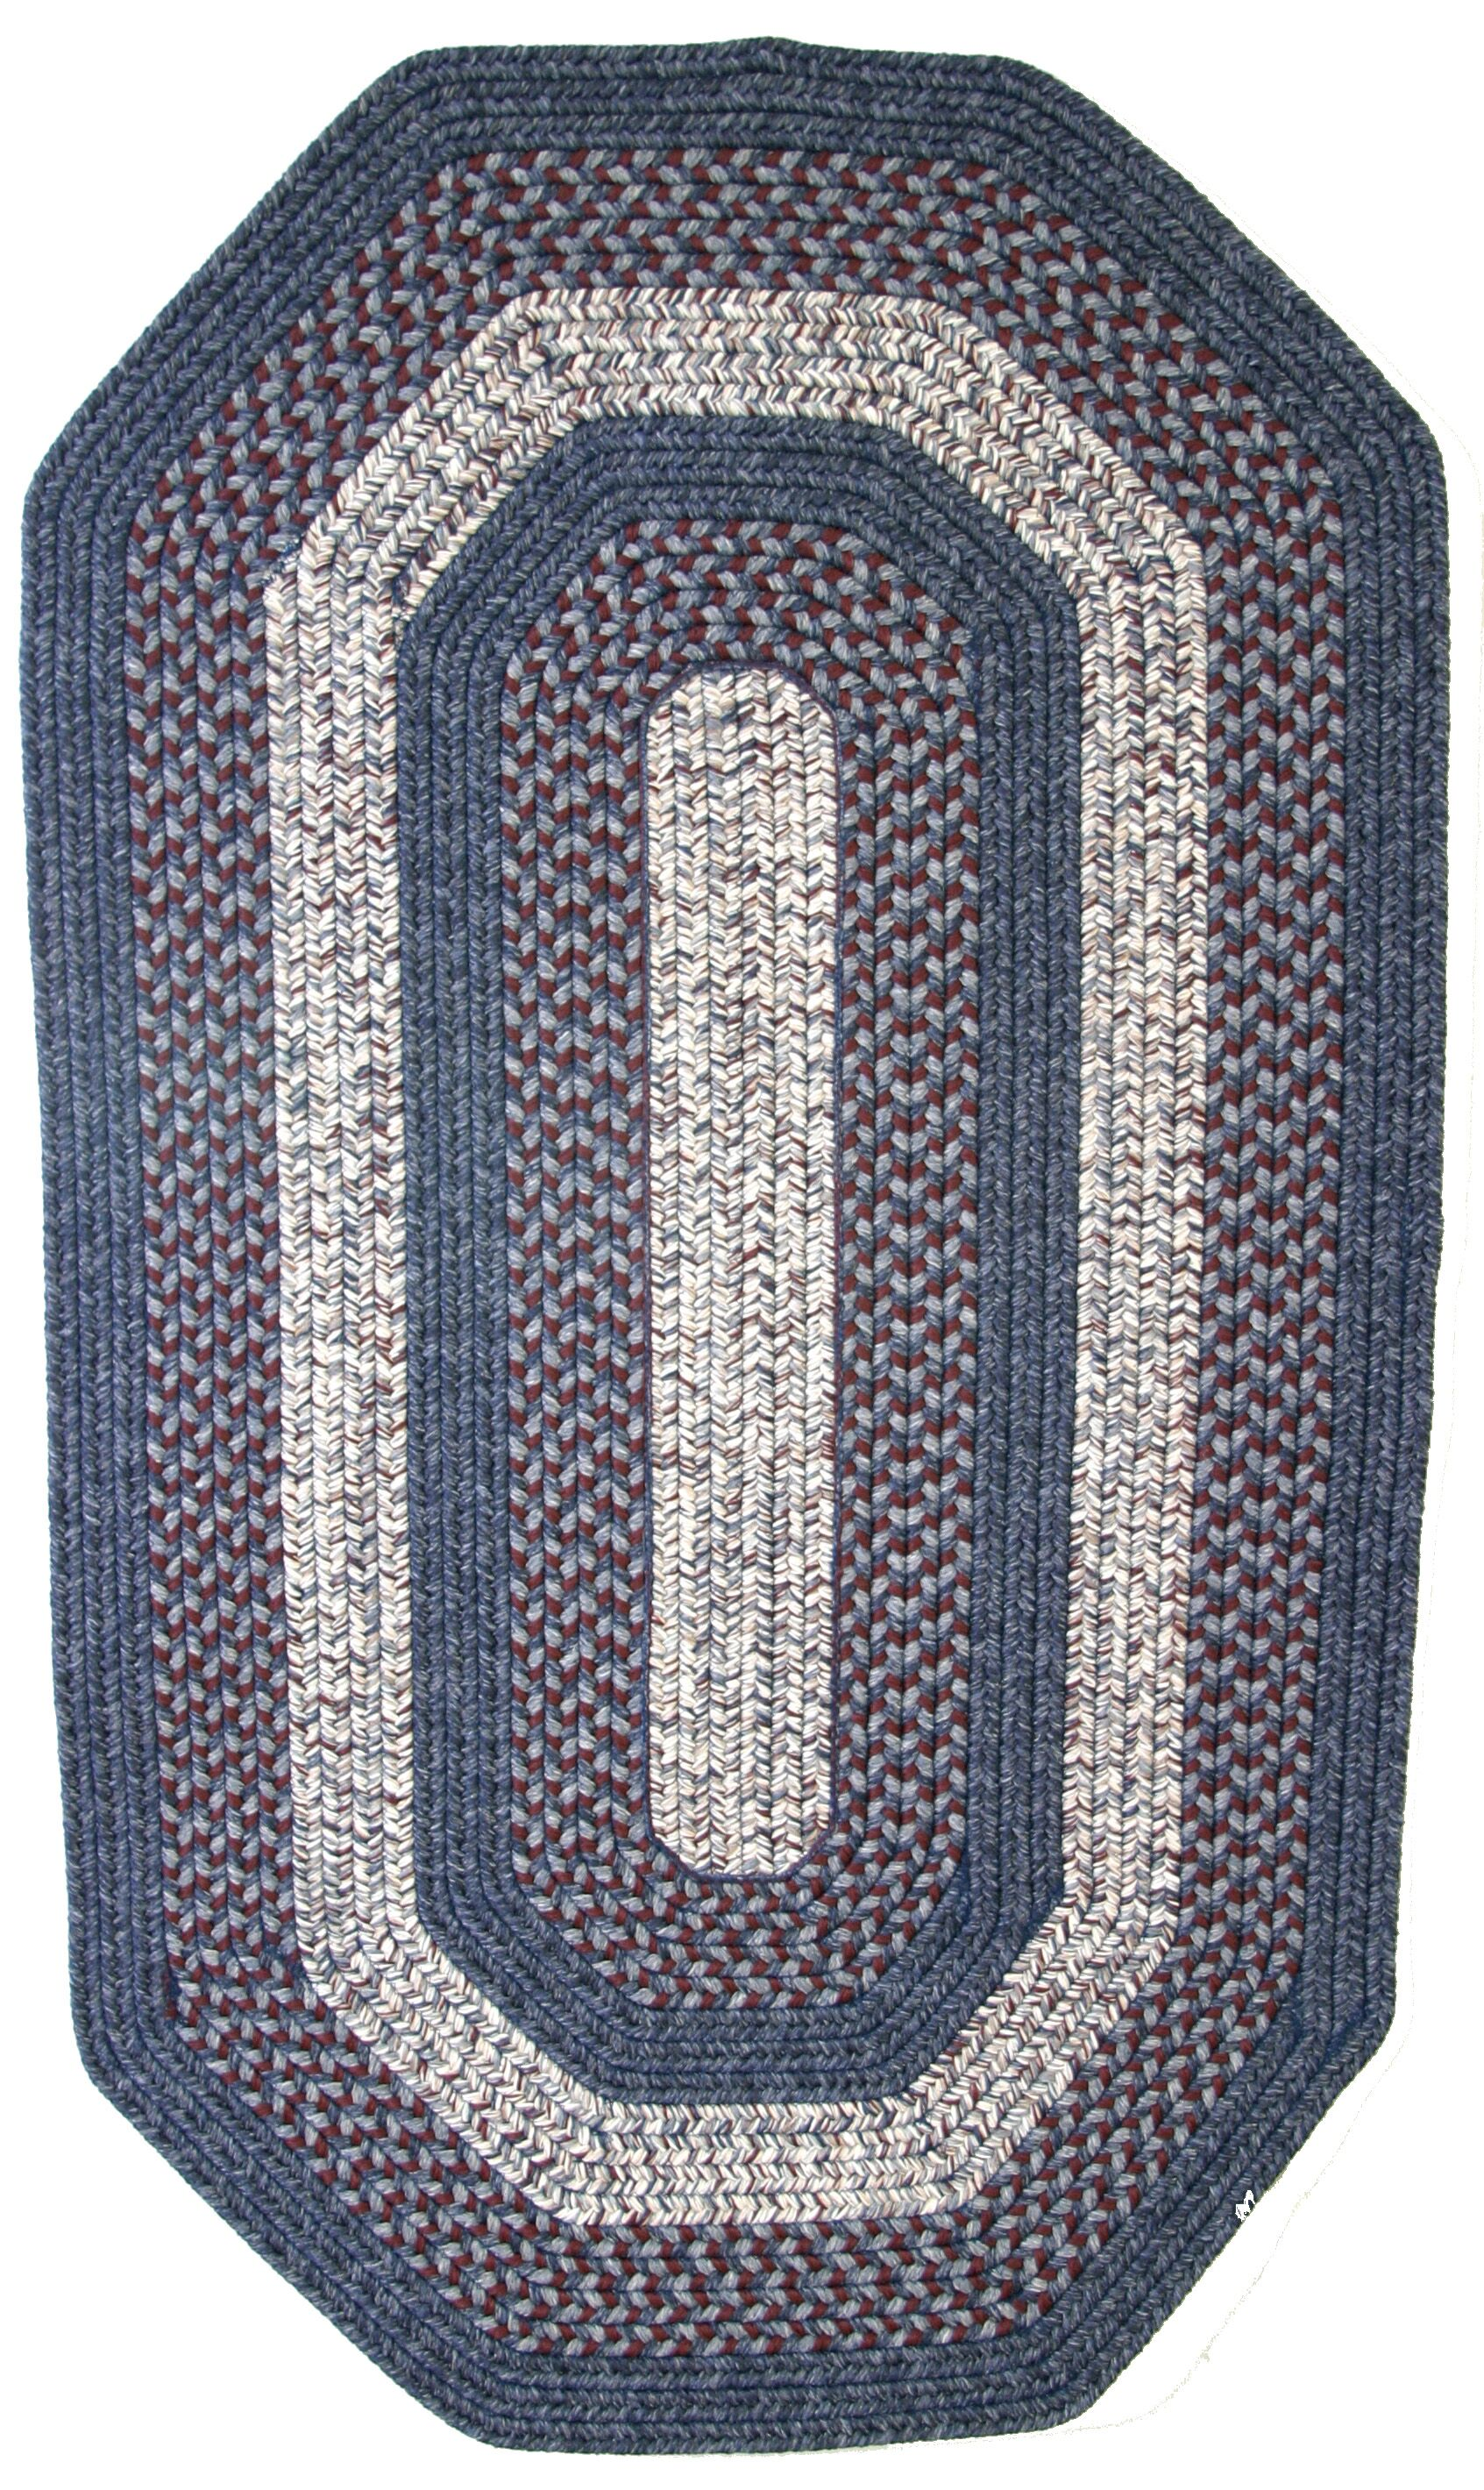 Town Crier Blue with Red Indoor/Outdoor Rug Rug Size: Elongated Octagon 6' x 9'